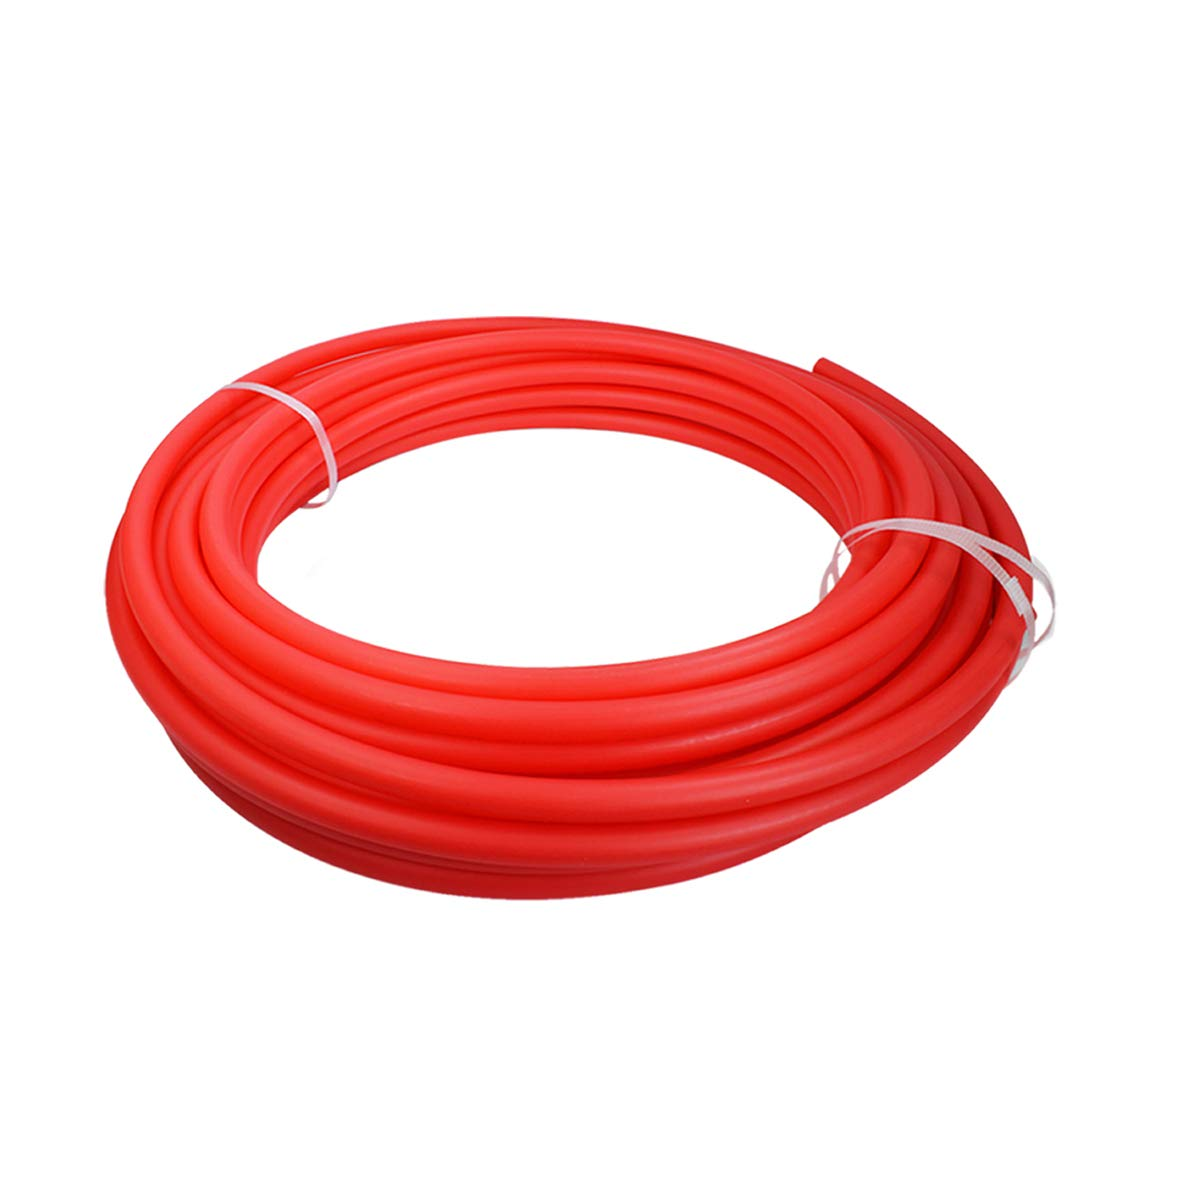 Supply Giant QGX-S1300 PEX Tubing for Potable Water, Non-Barrier Pipe 1 in. x 300 Feet, Red, 100